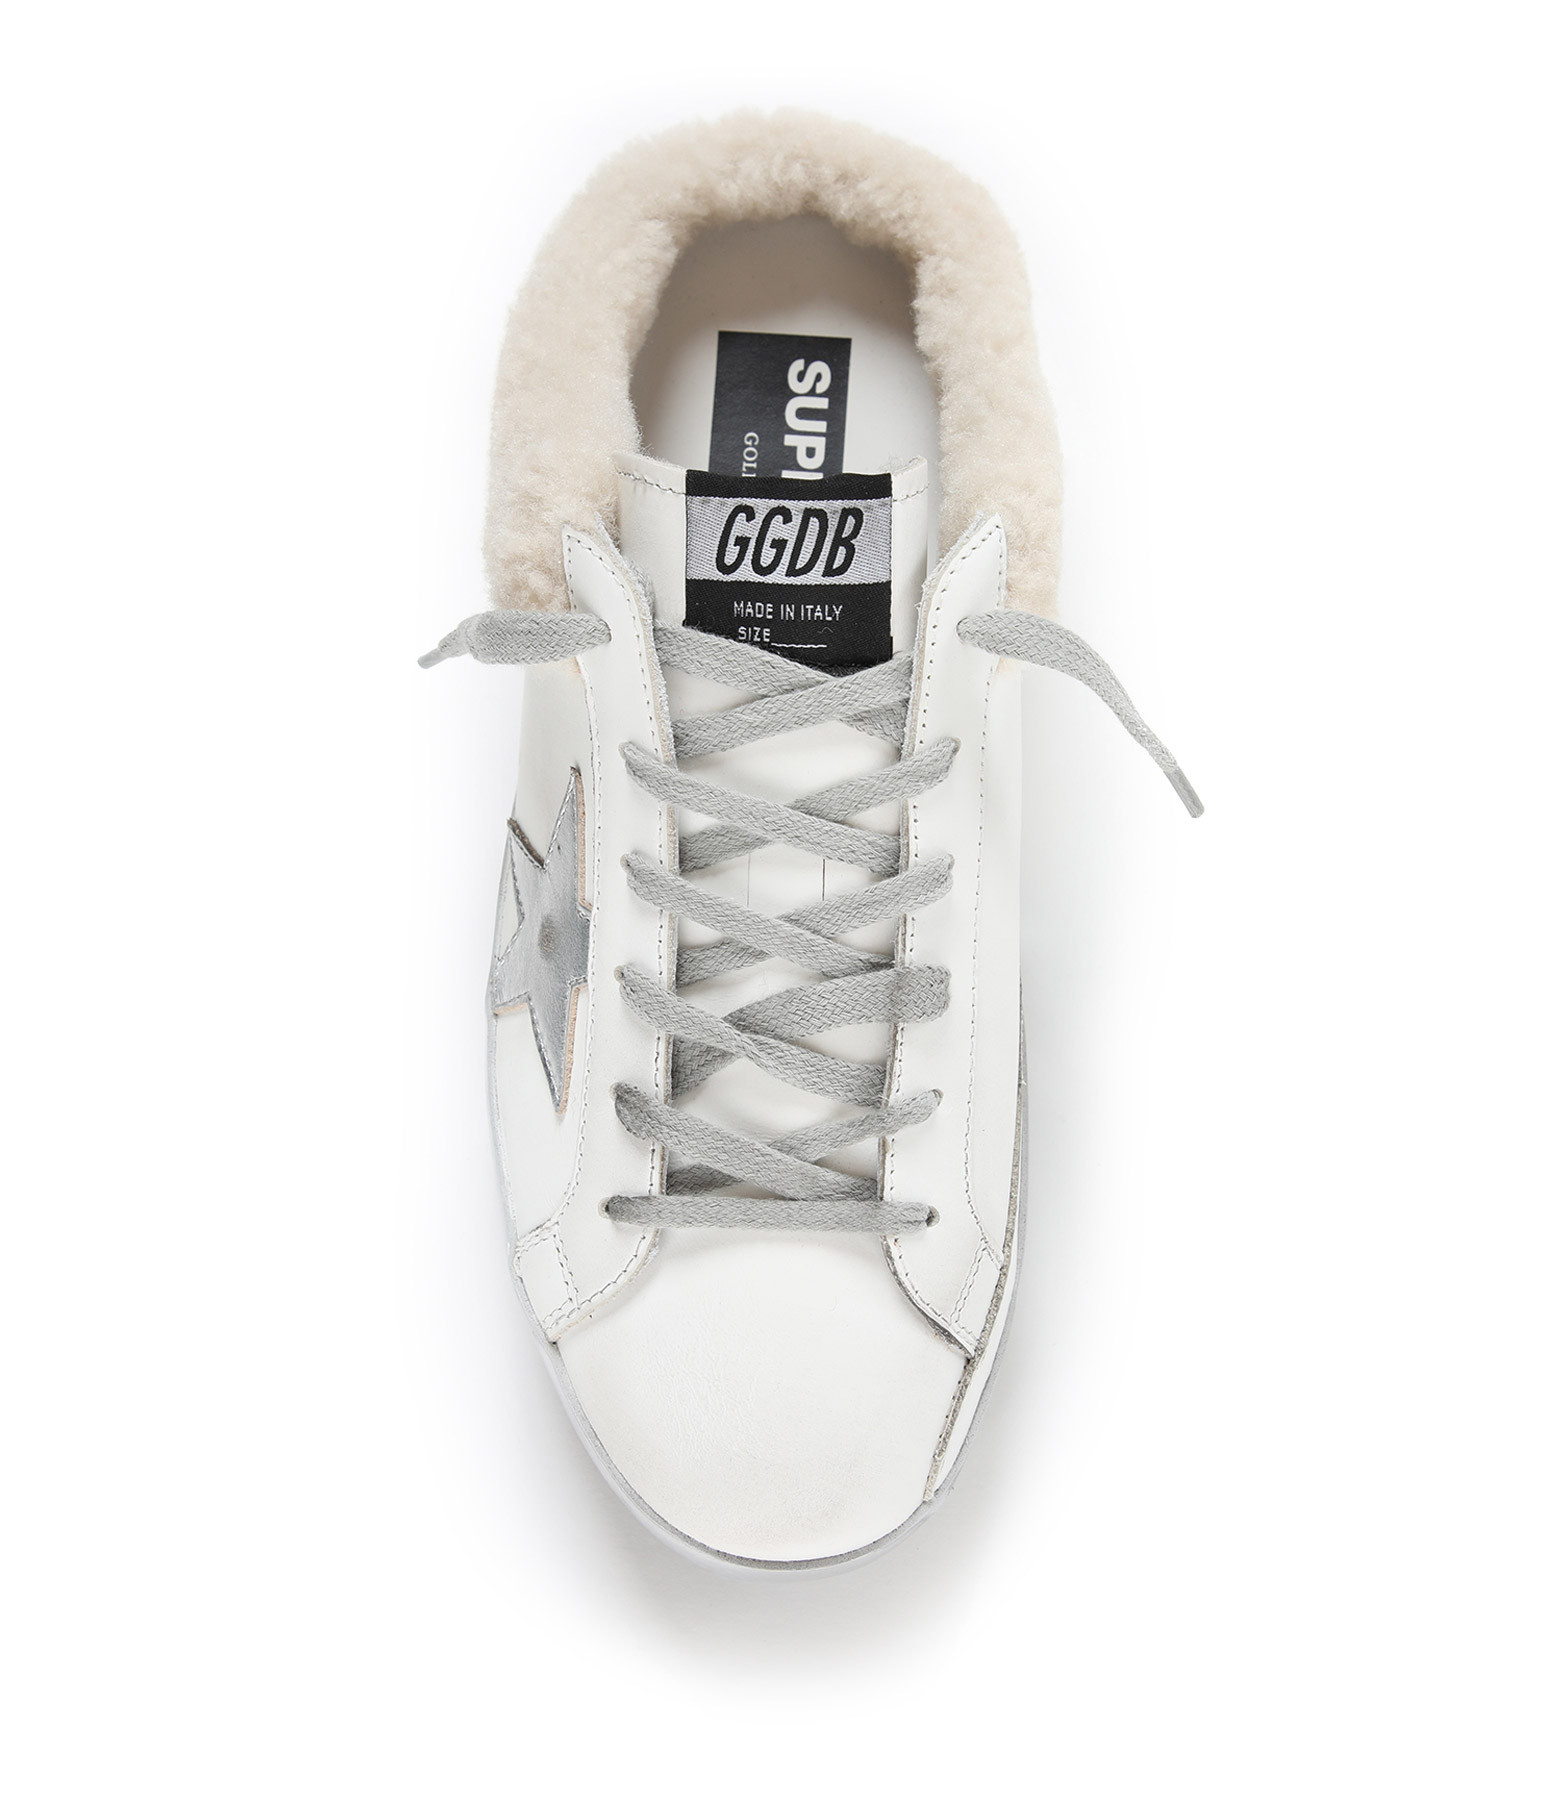 GOLDEN GOOSE - Baskets Superstar Sabot Mouton Cuir Argenté Blanc